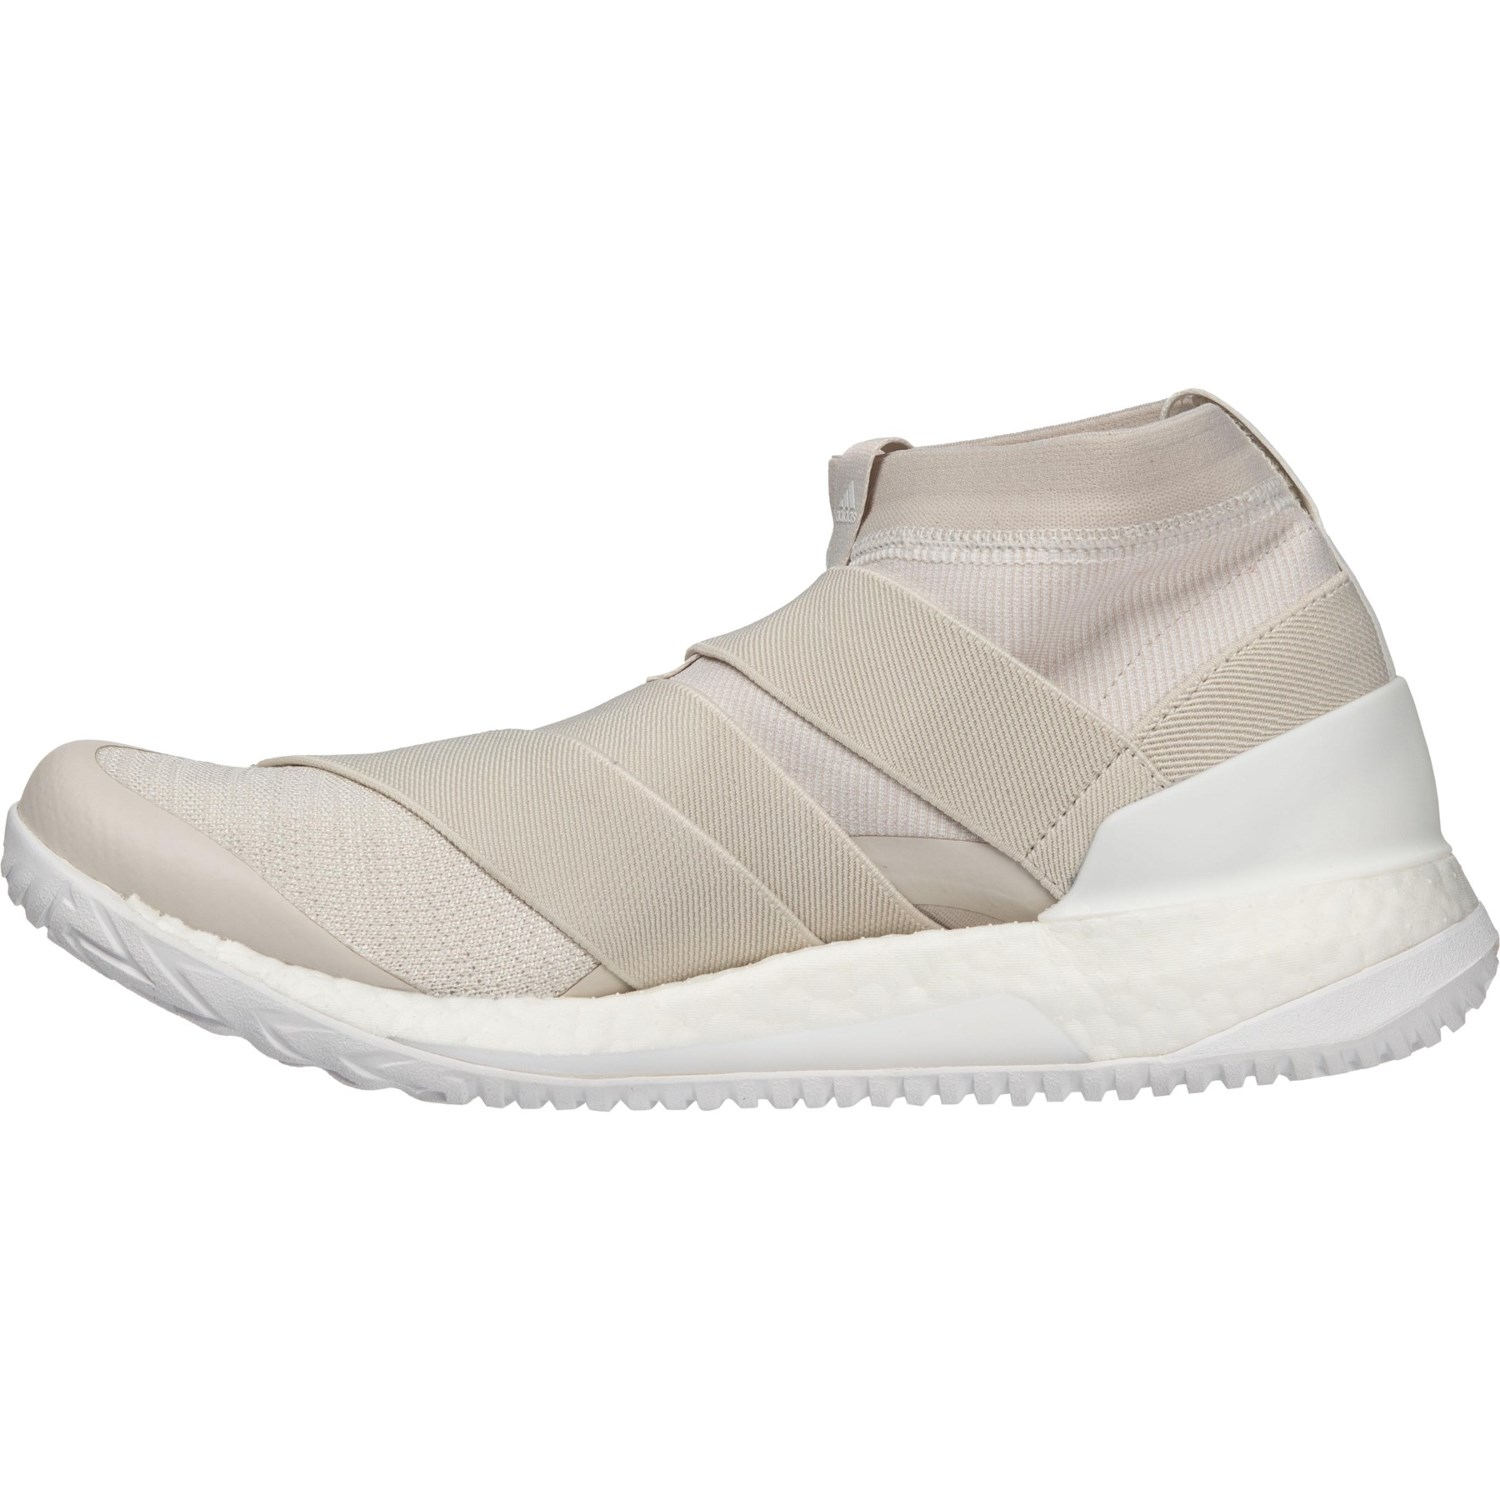 ff4d9a1568030 adidas Pureboost X TR 3.0 LL Training Shoes (For Women) - Save 59%